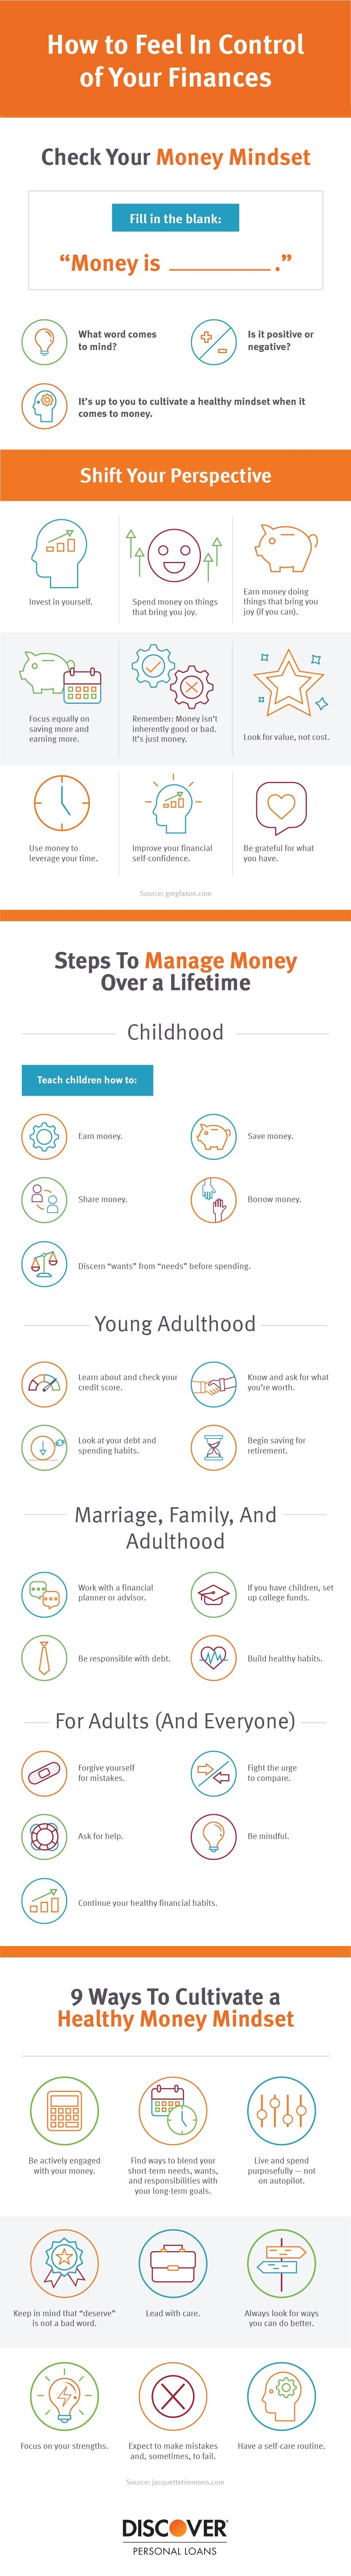 How to Feel In Control of Your Finances #infographic